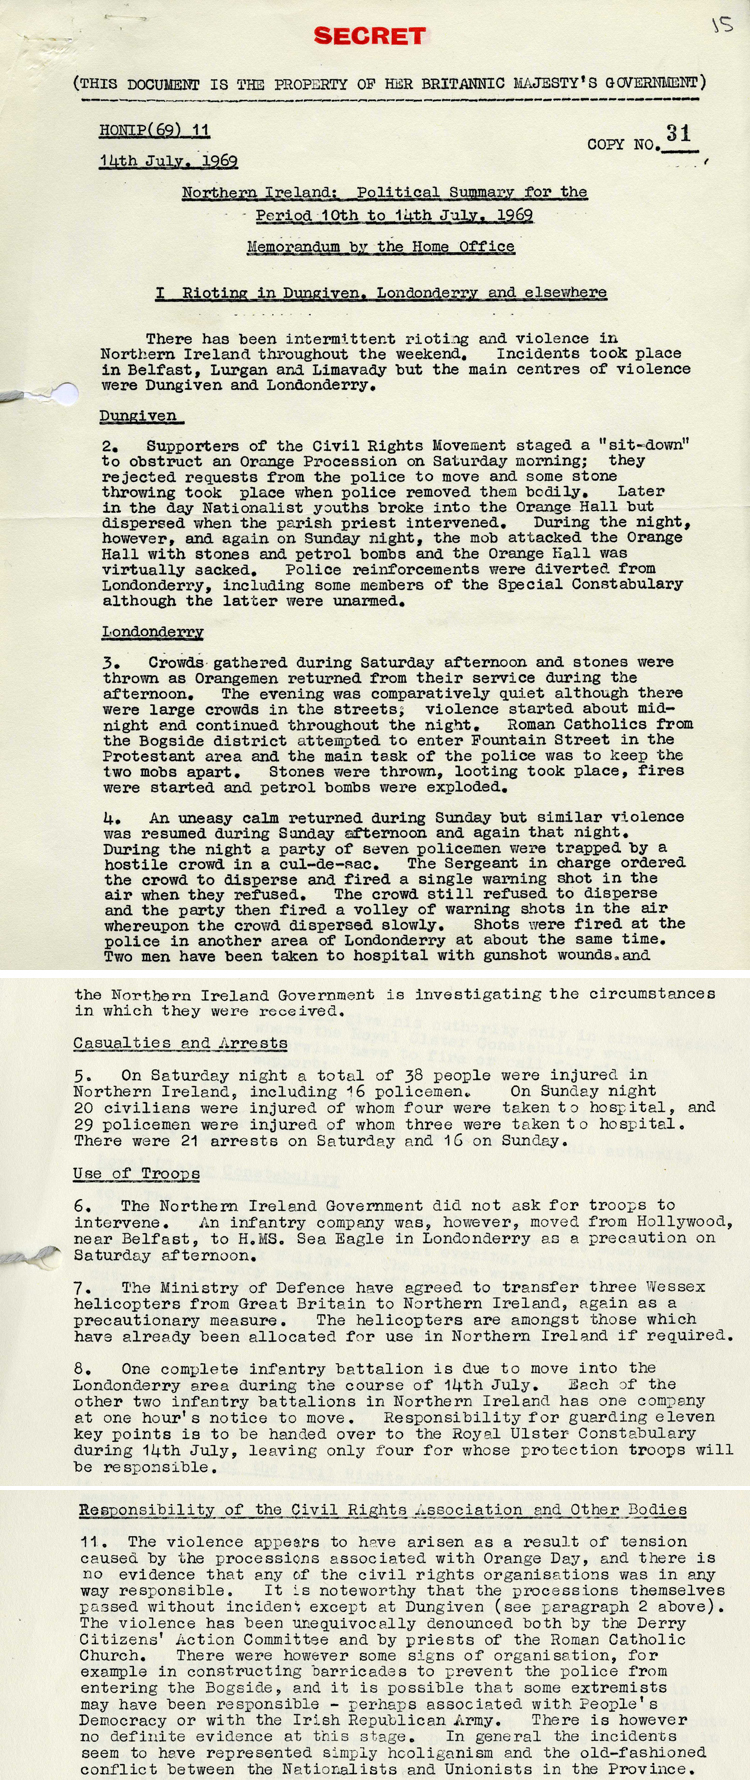 Extracts from a British government report about the political situation in Northern Ireland in July 1969 (CJ 3/52)